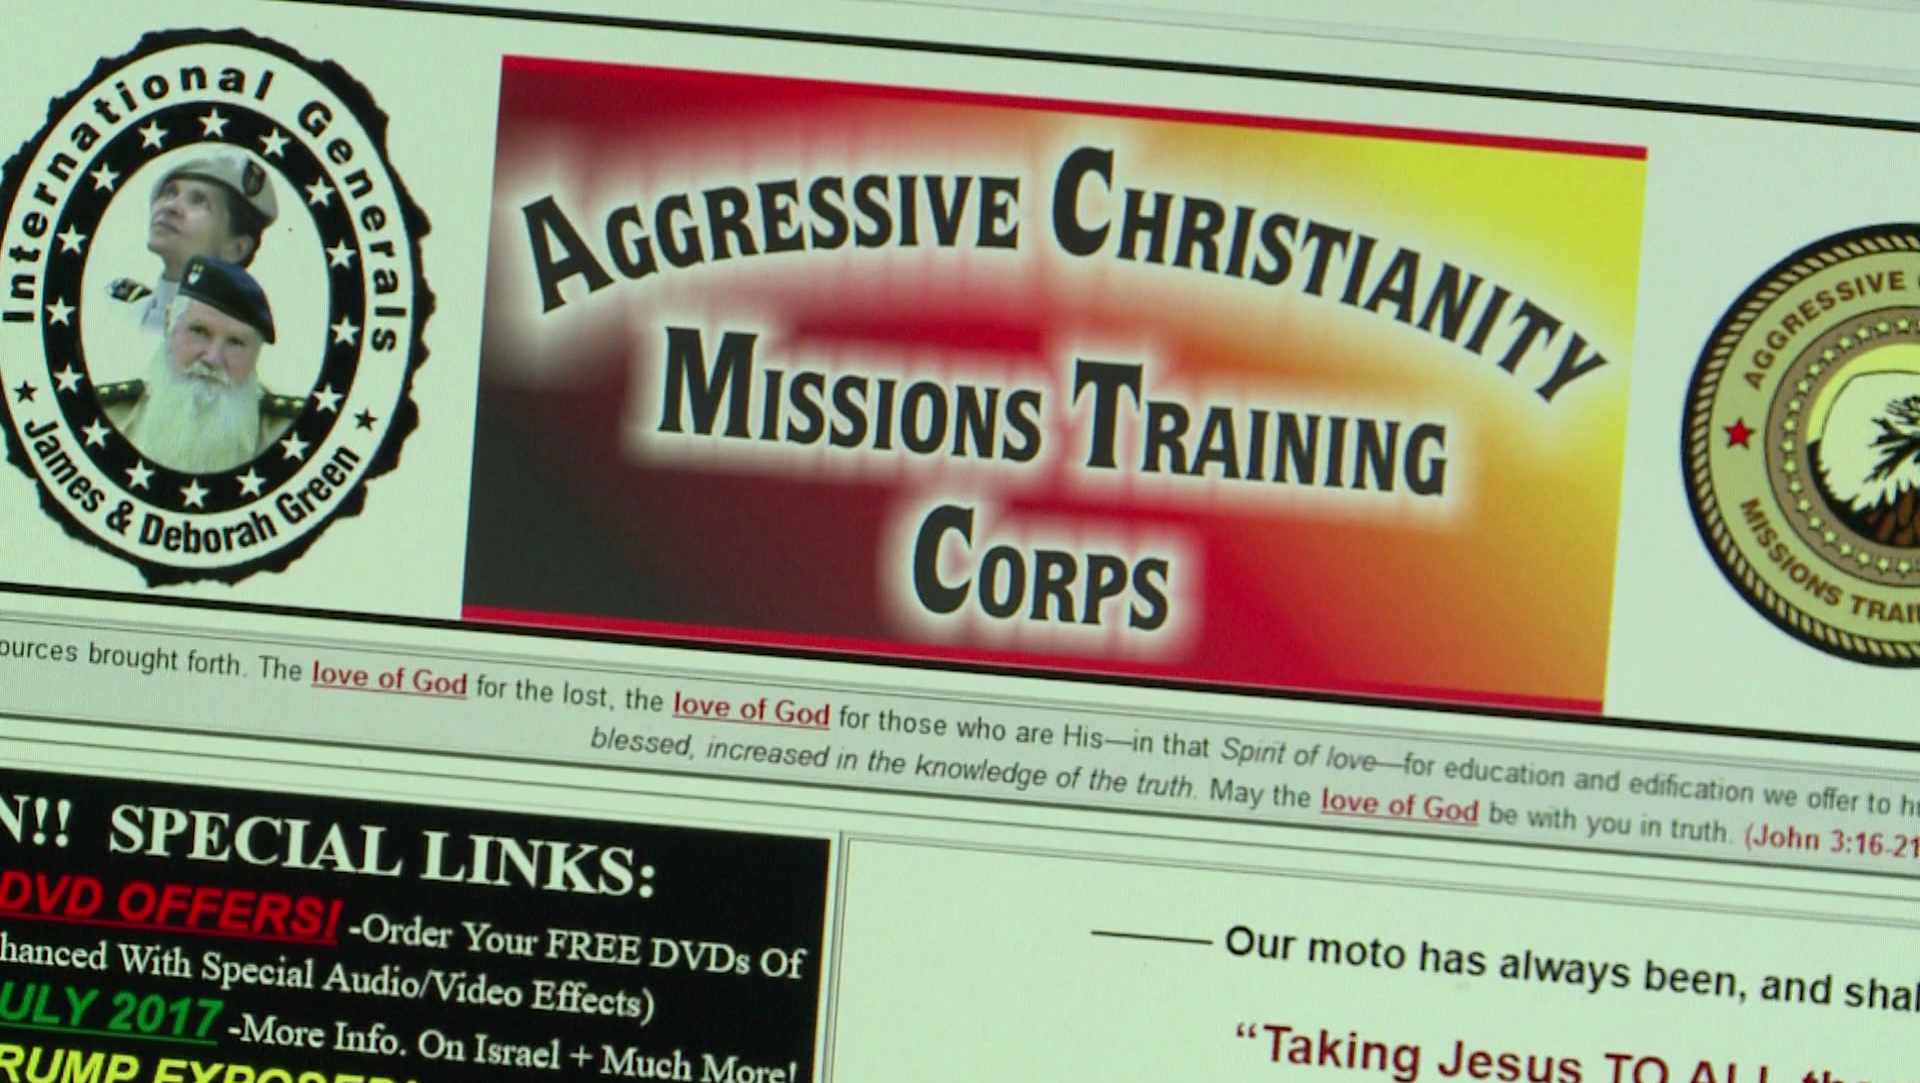 Aggressive Christianity Missions Training Corps website